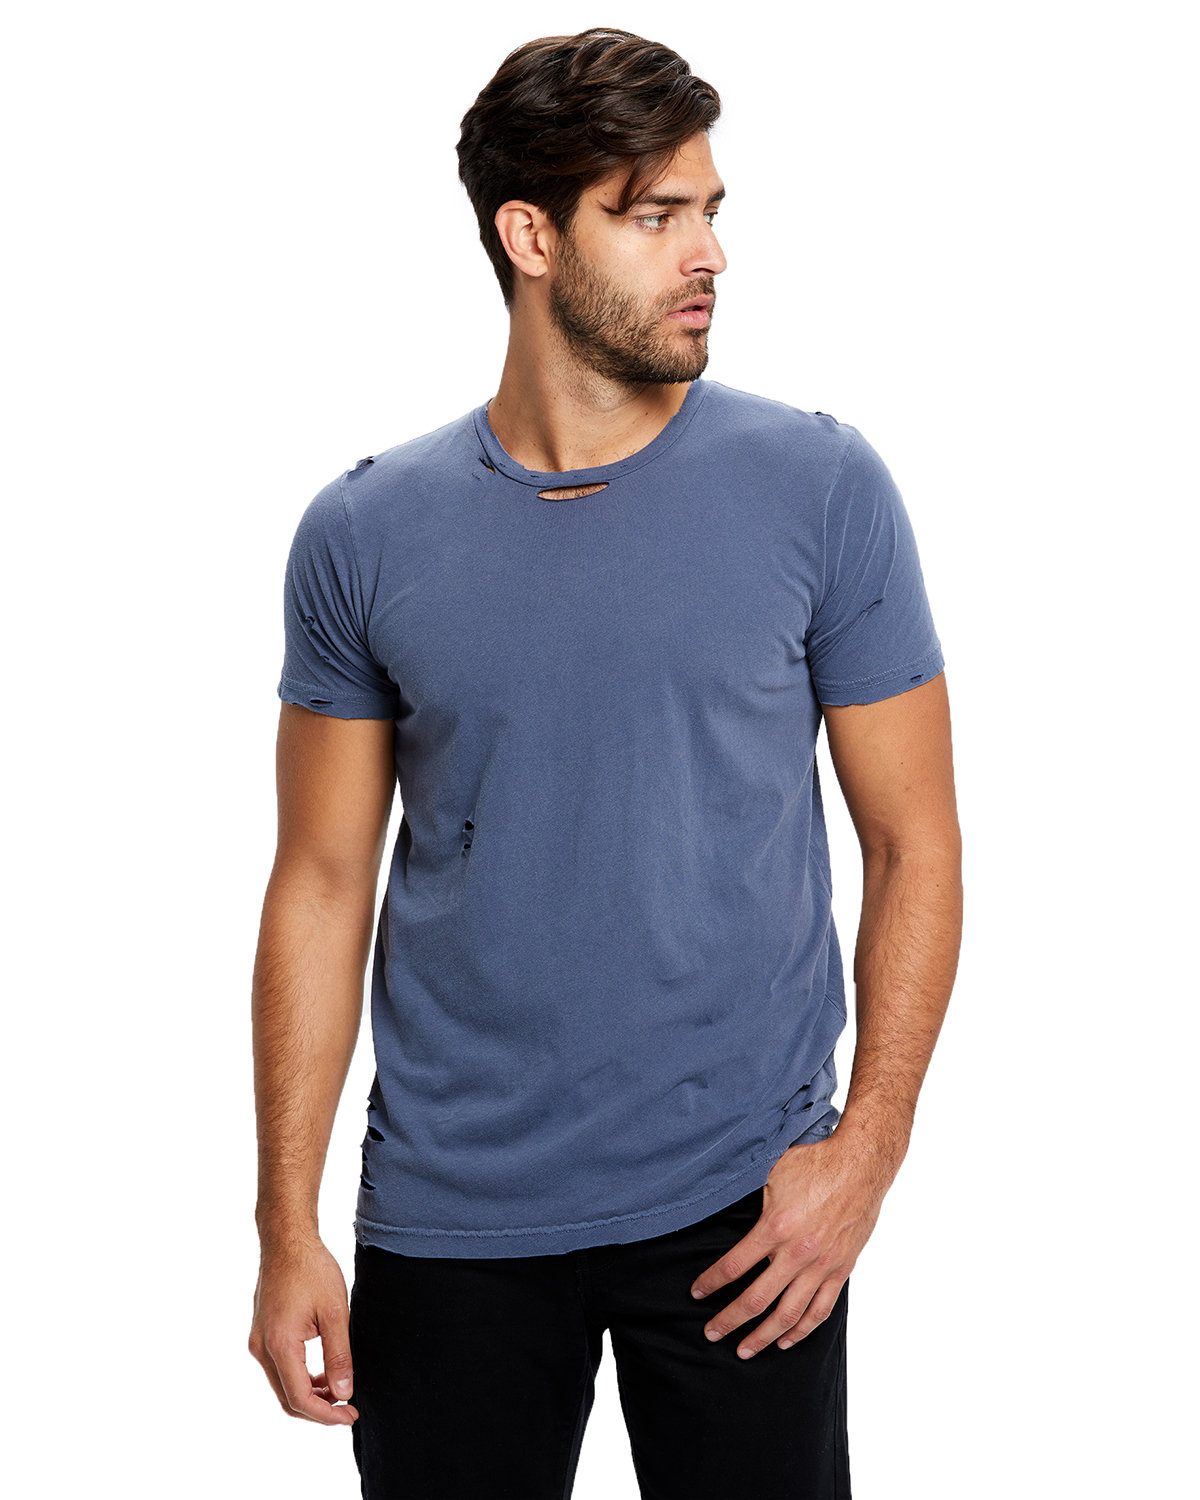 US Blanks Unisex Pigment-Dyed Destroyed T-Shirt PIGMENT NAVY